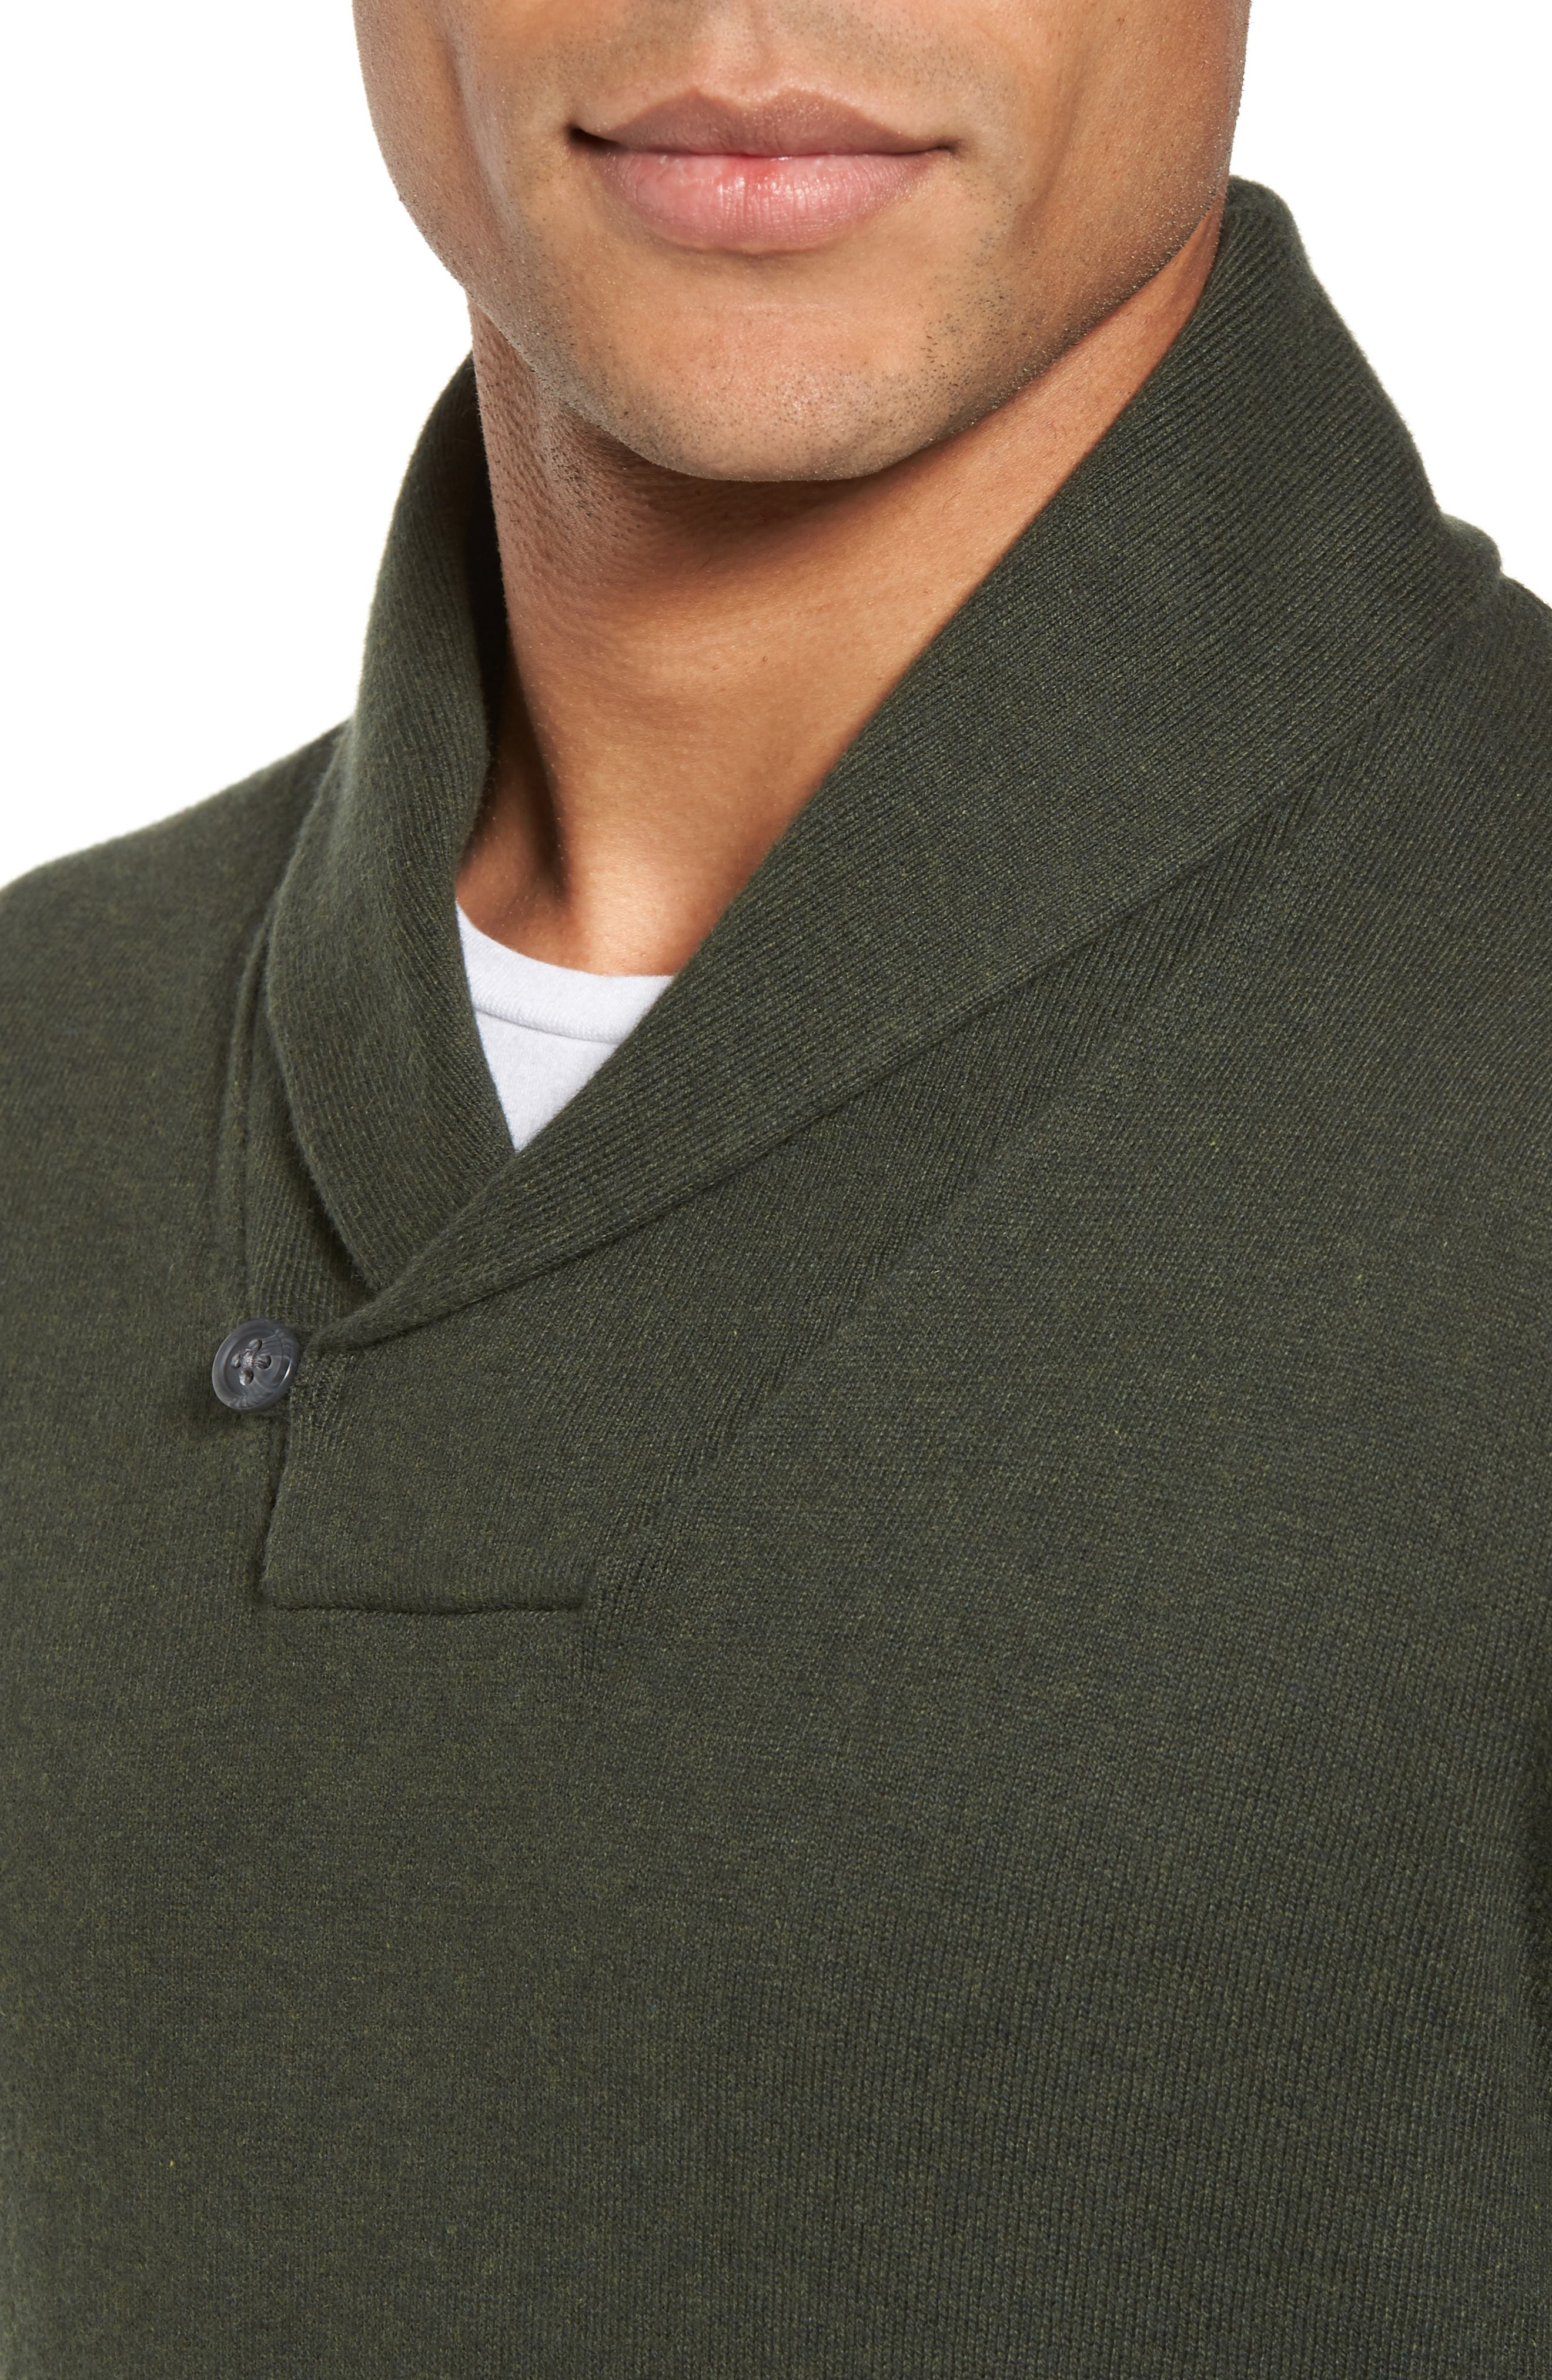 Cotton & Cashmere Shawl Collar Sweater,                             Alternate thumbnail 4, color,                             Green Deep Pine